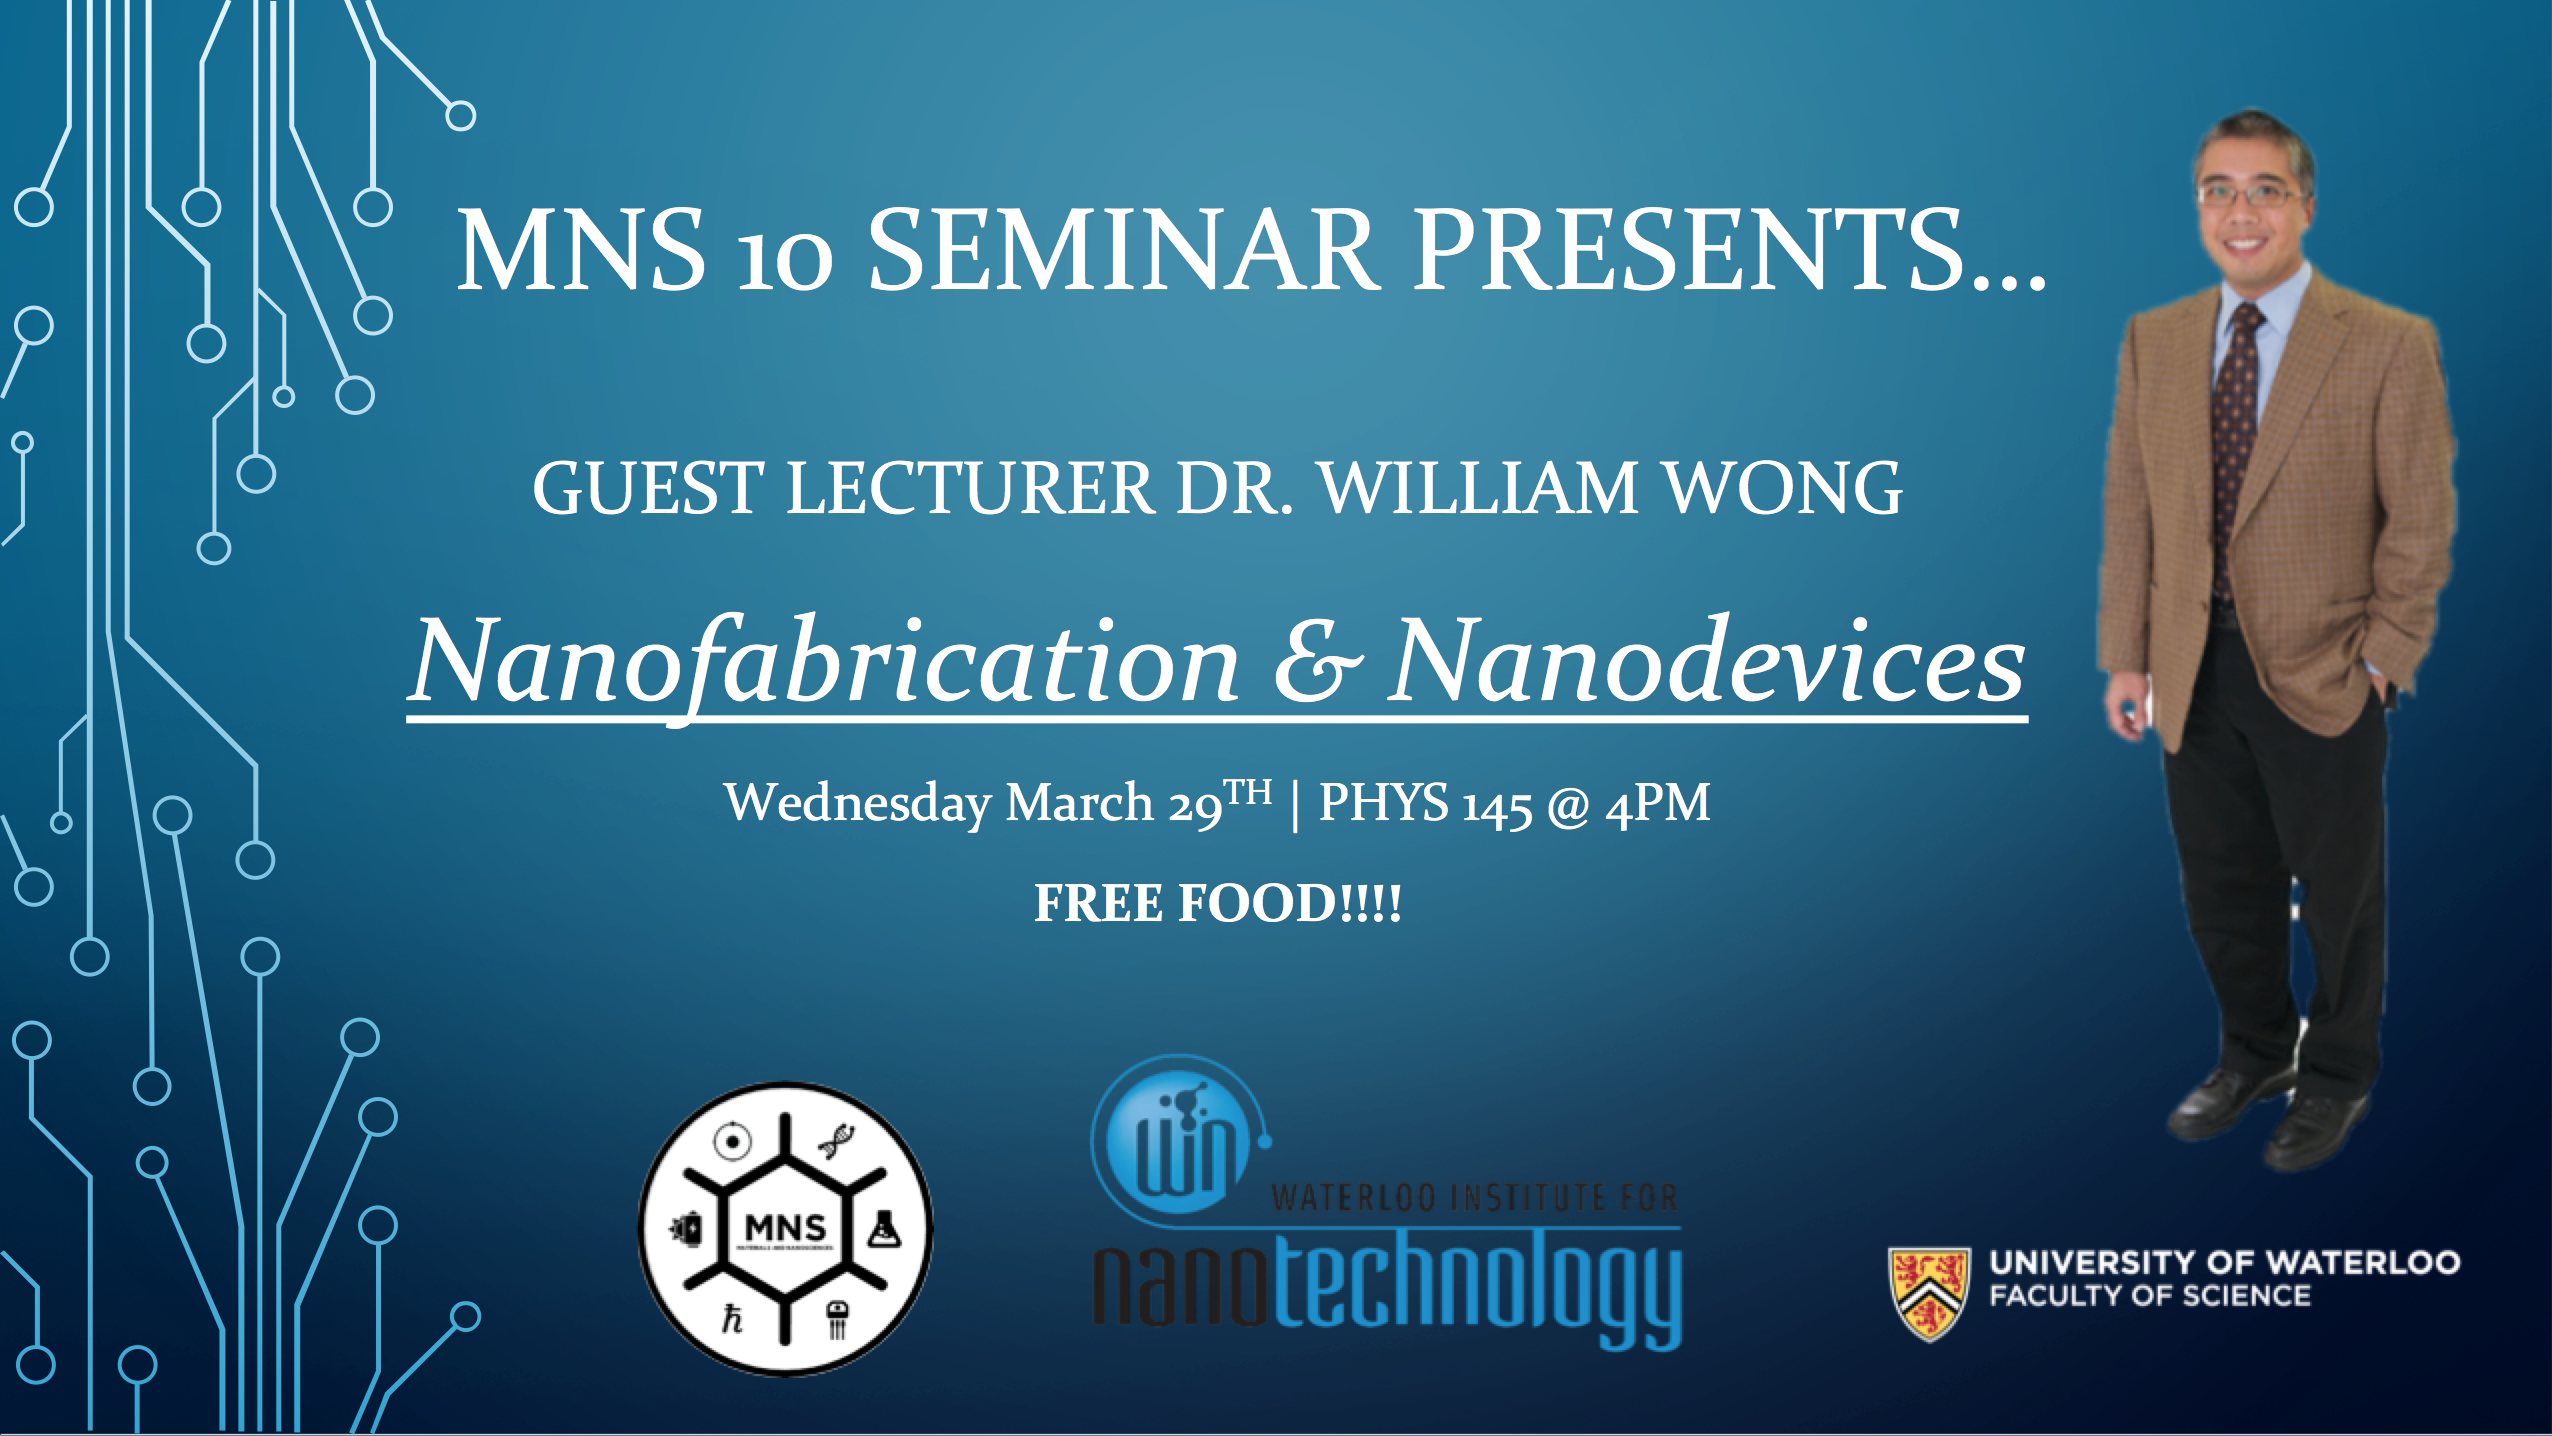 Nanofabrication & Nanodevices slide